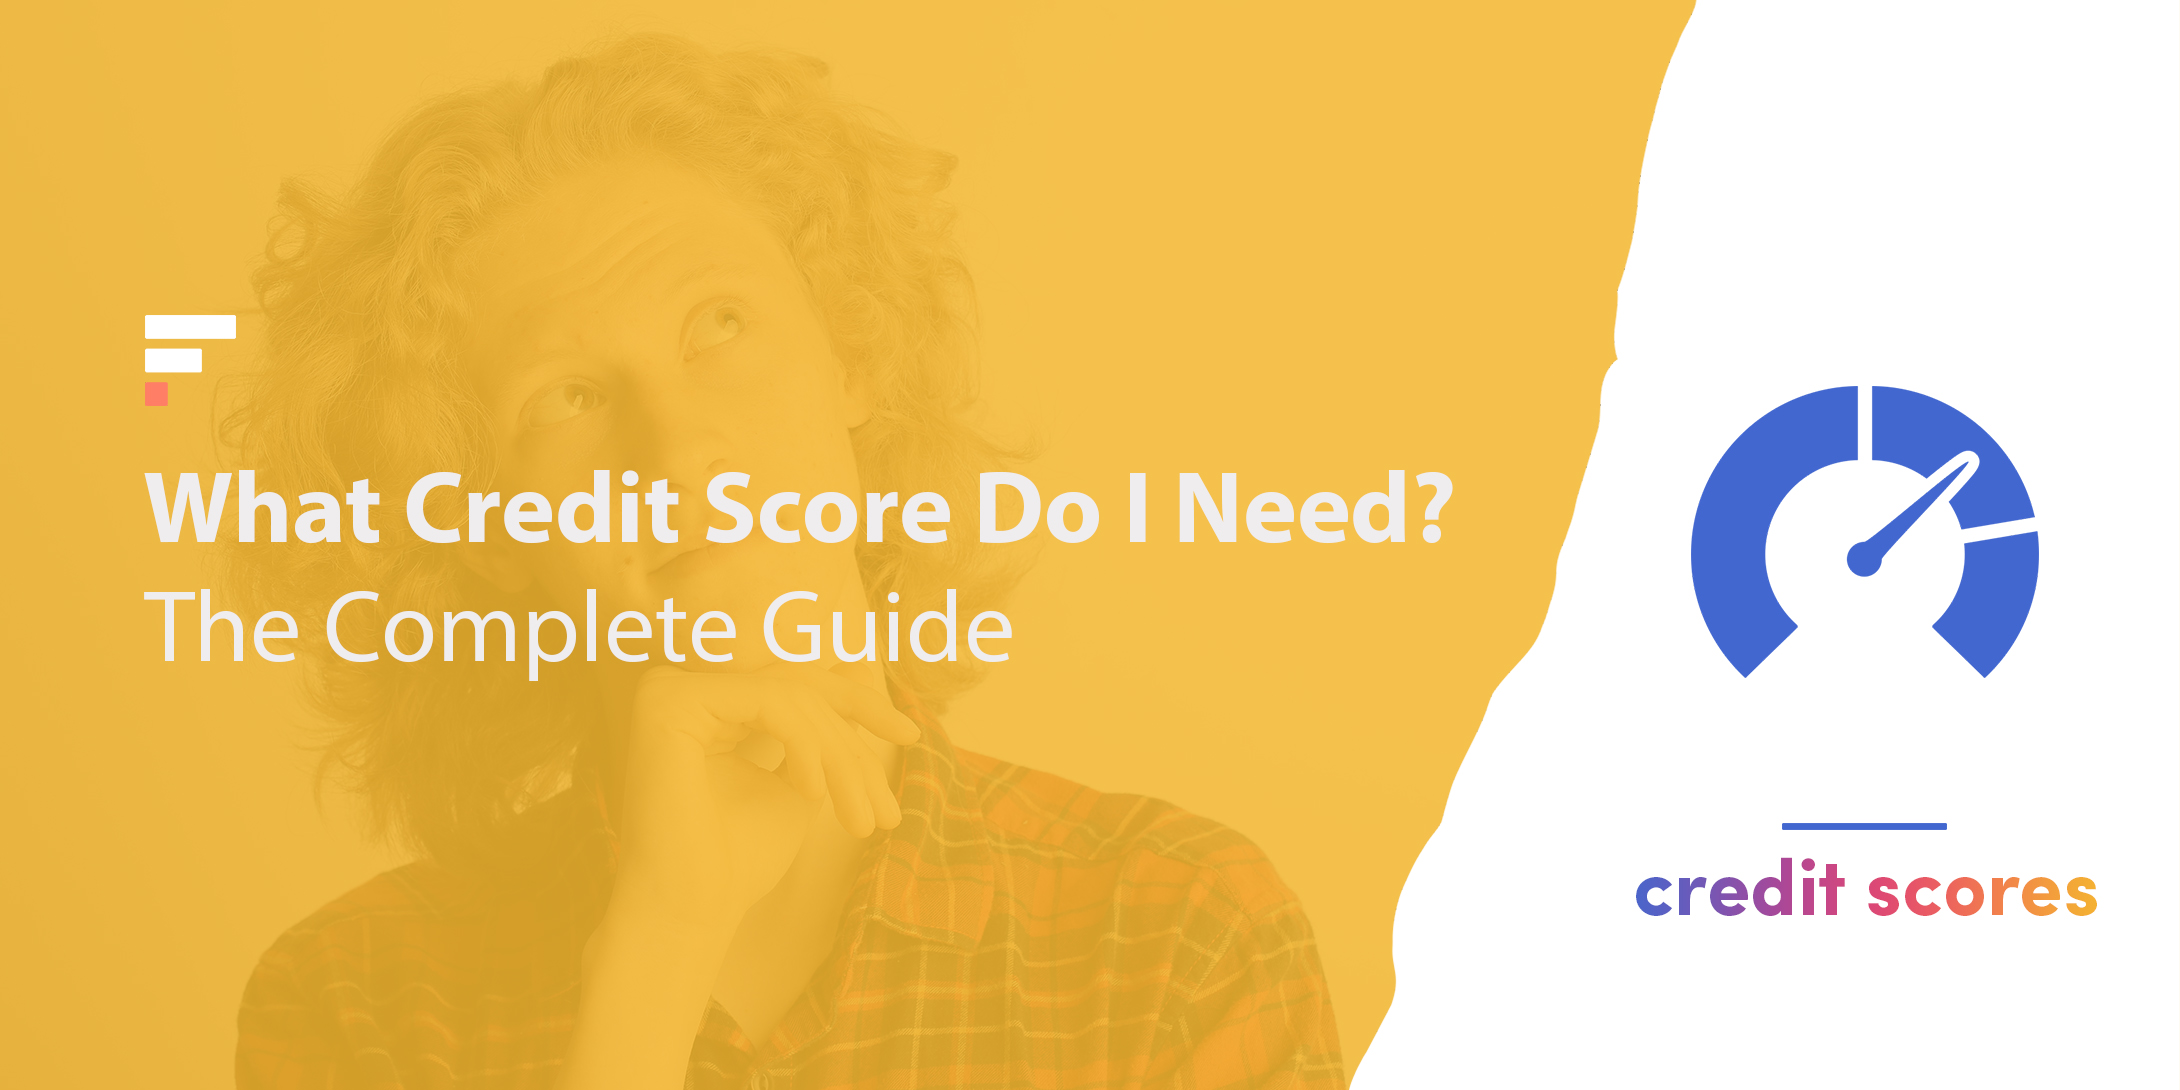 What credit score do I need to...?